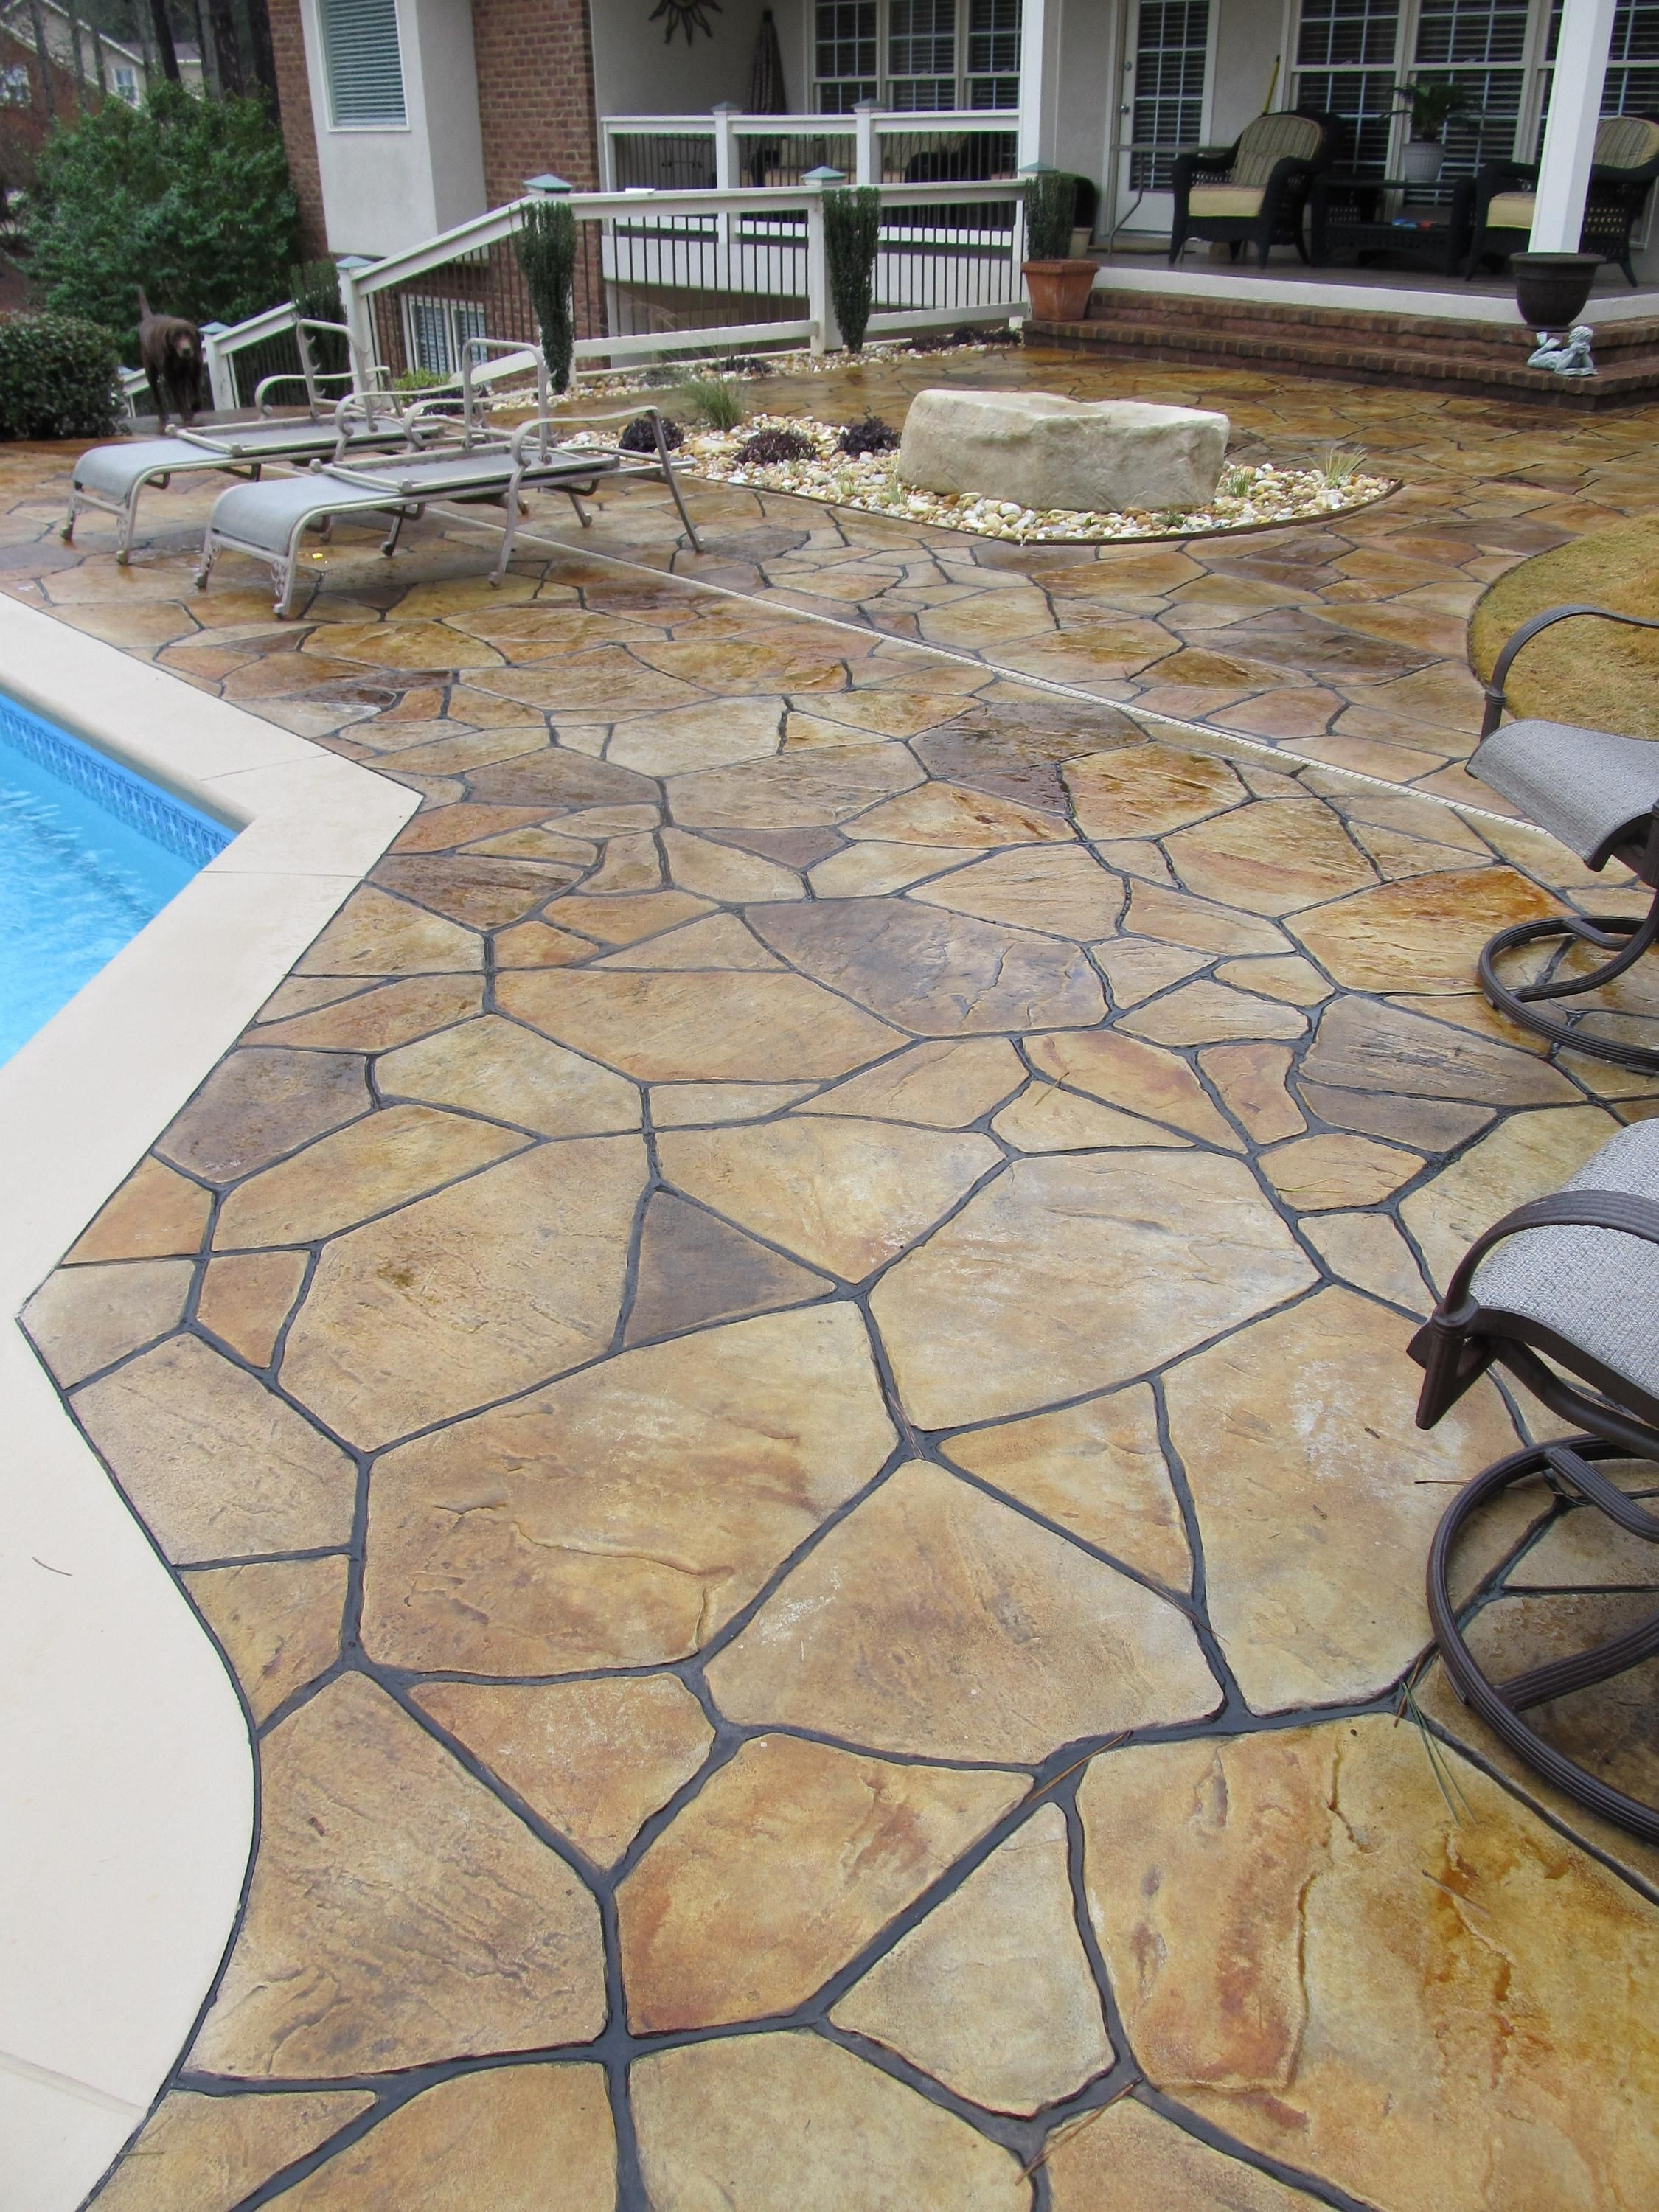 Tile Over Concrete Pool Deck Multi Color Flagstone Overlay Over Existing Pool Deck With Smooth